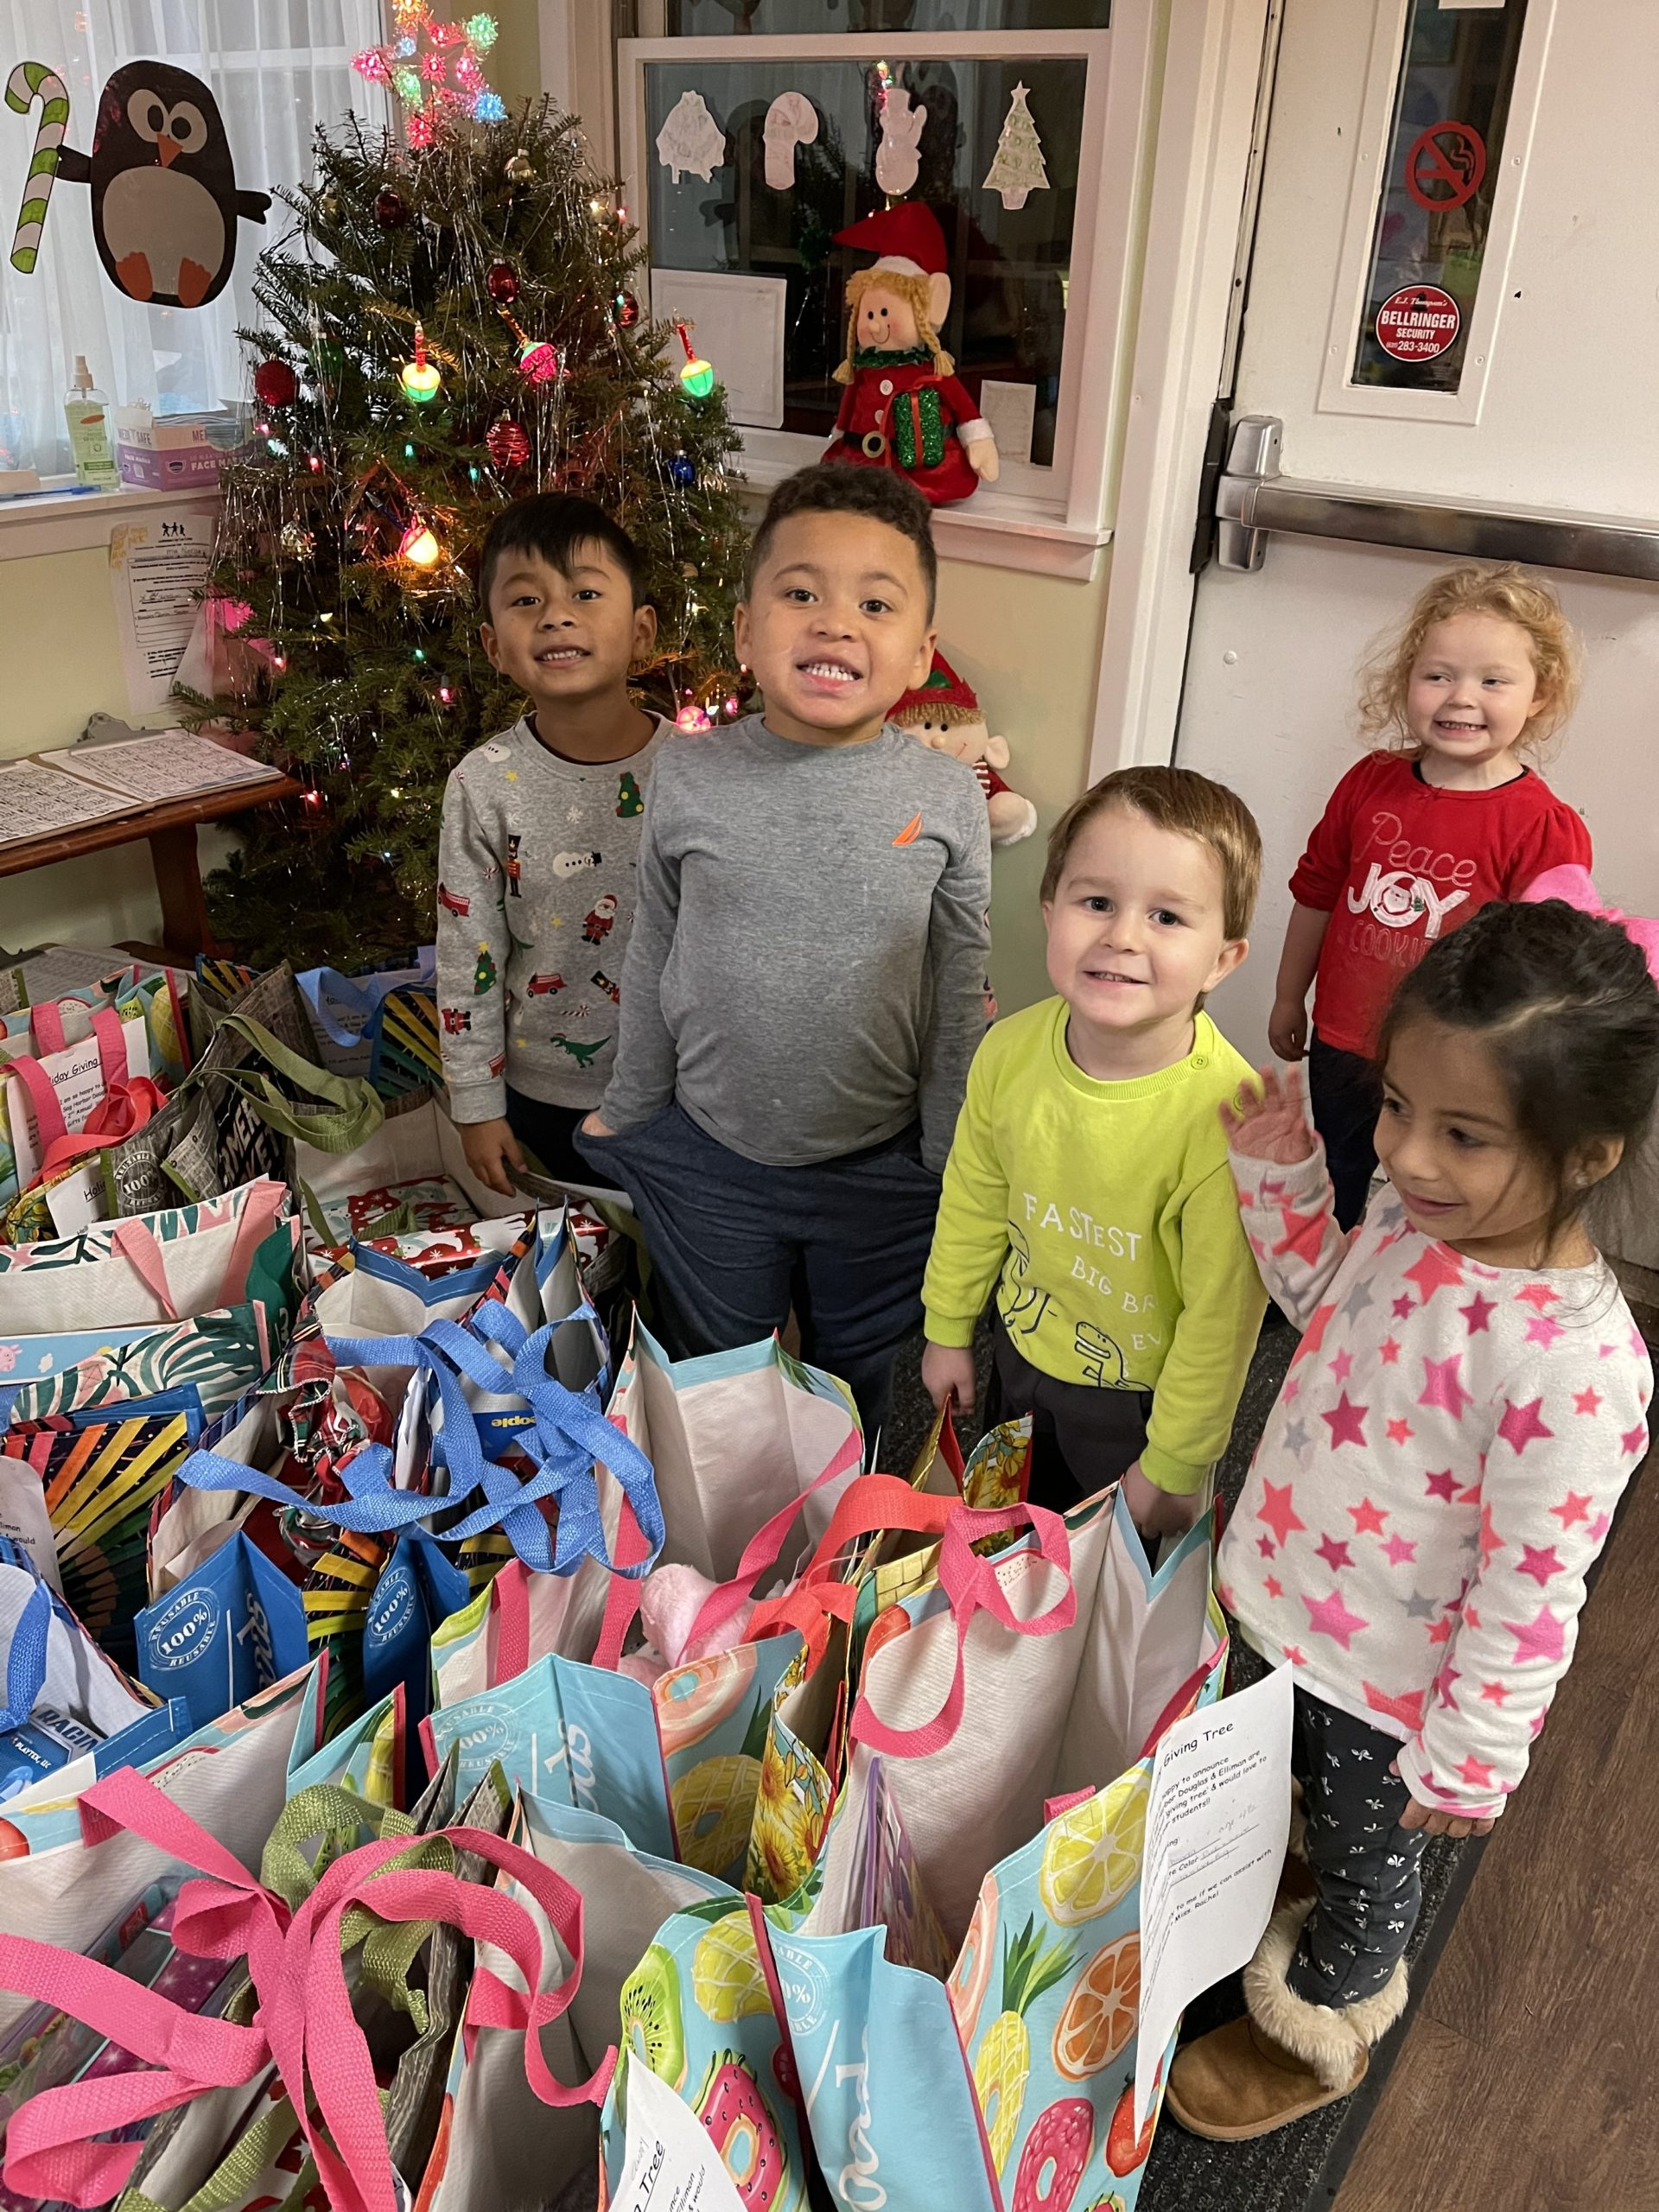 Children at the Southampton Day Care, a nonprofit day care center, receive gifts from a gift giving campaign organized by Brianna Ottati, a real estate agent at Douglas Elliman.